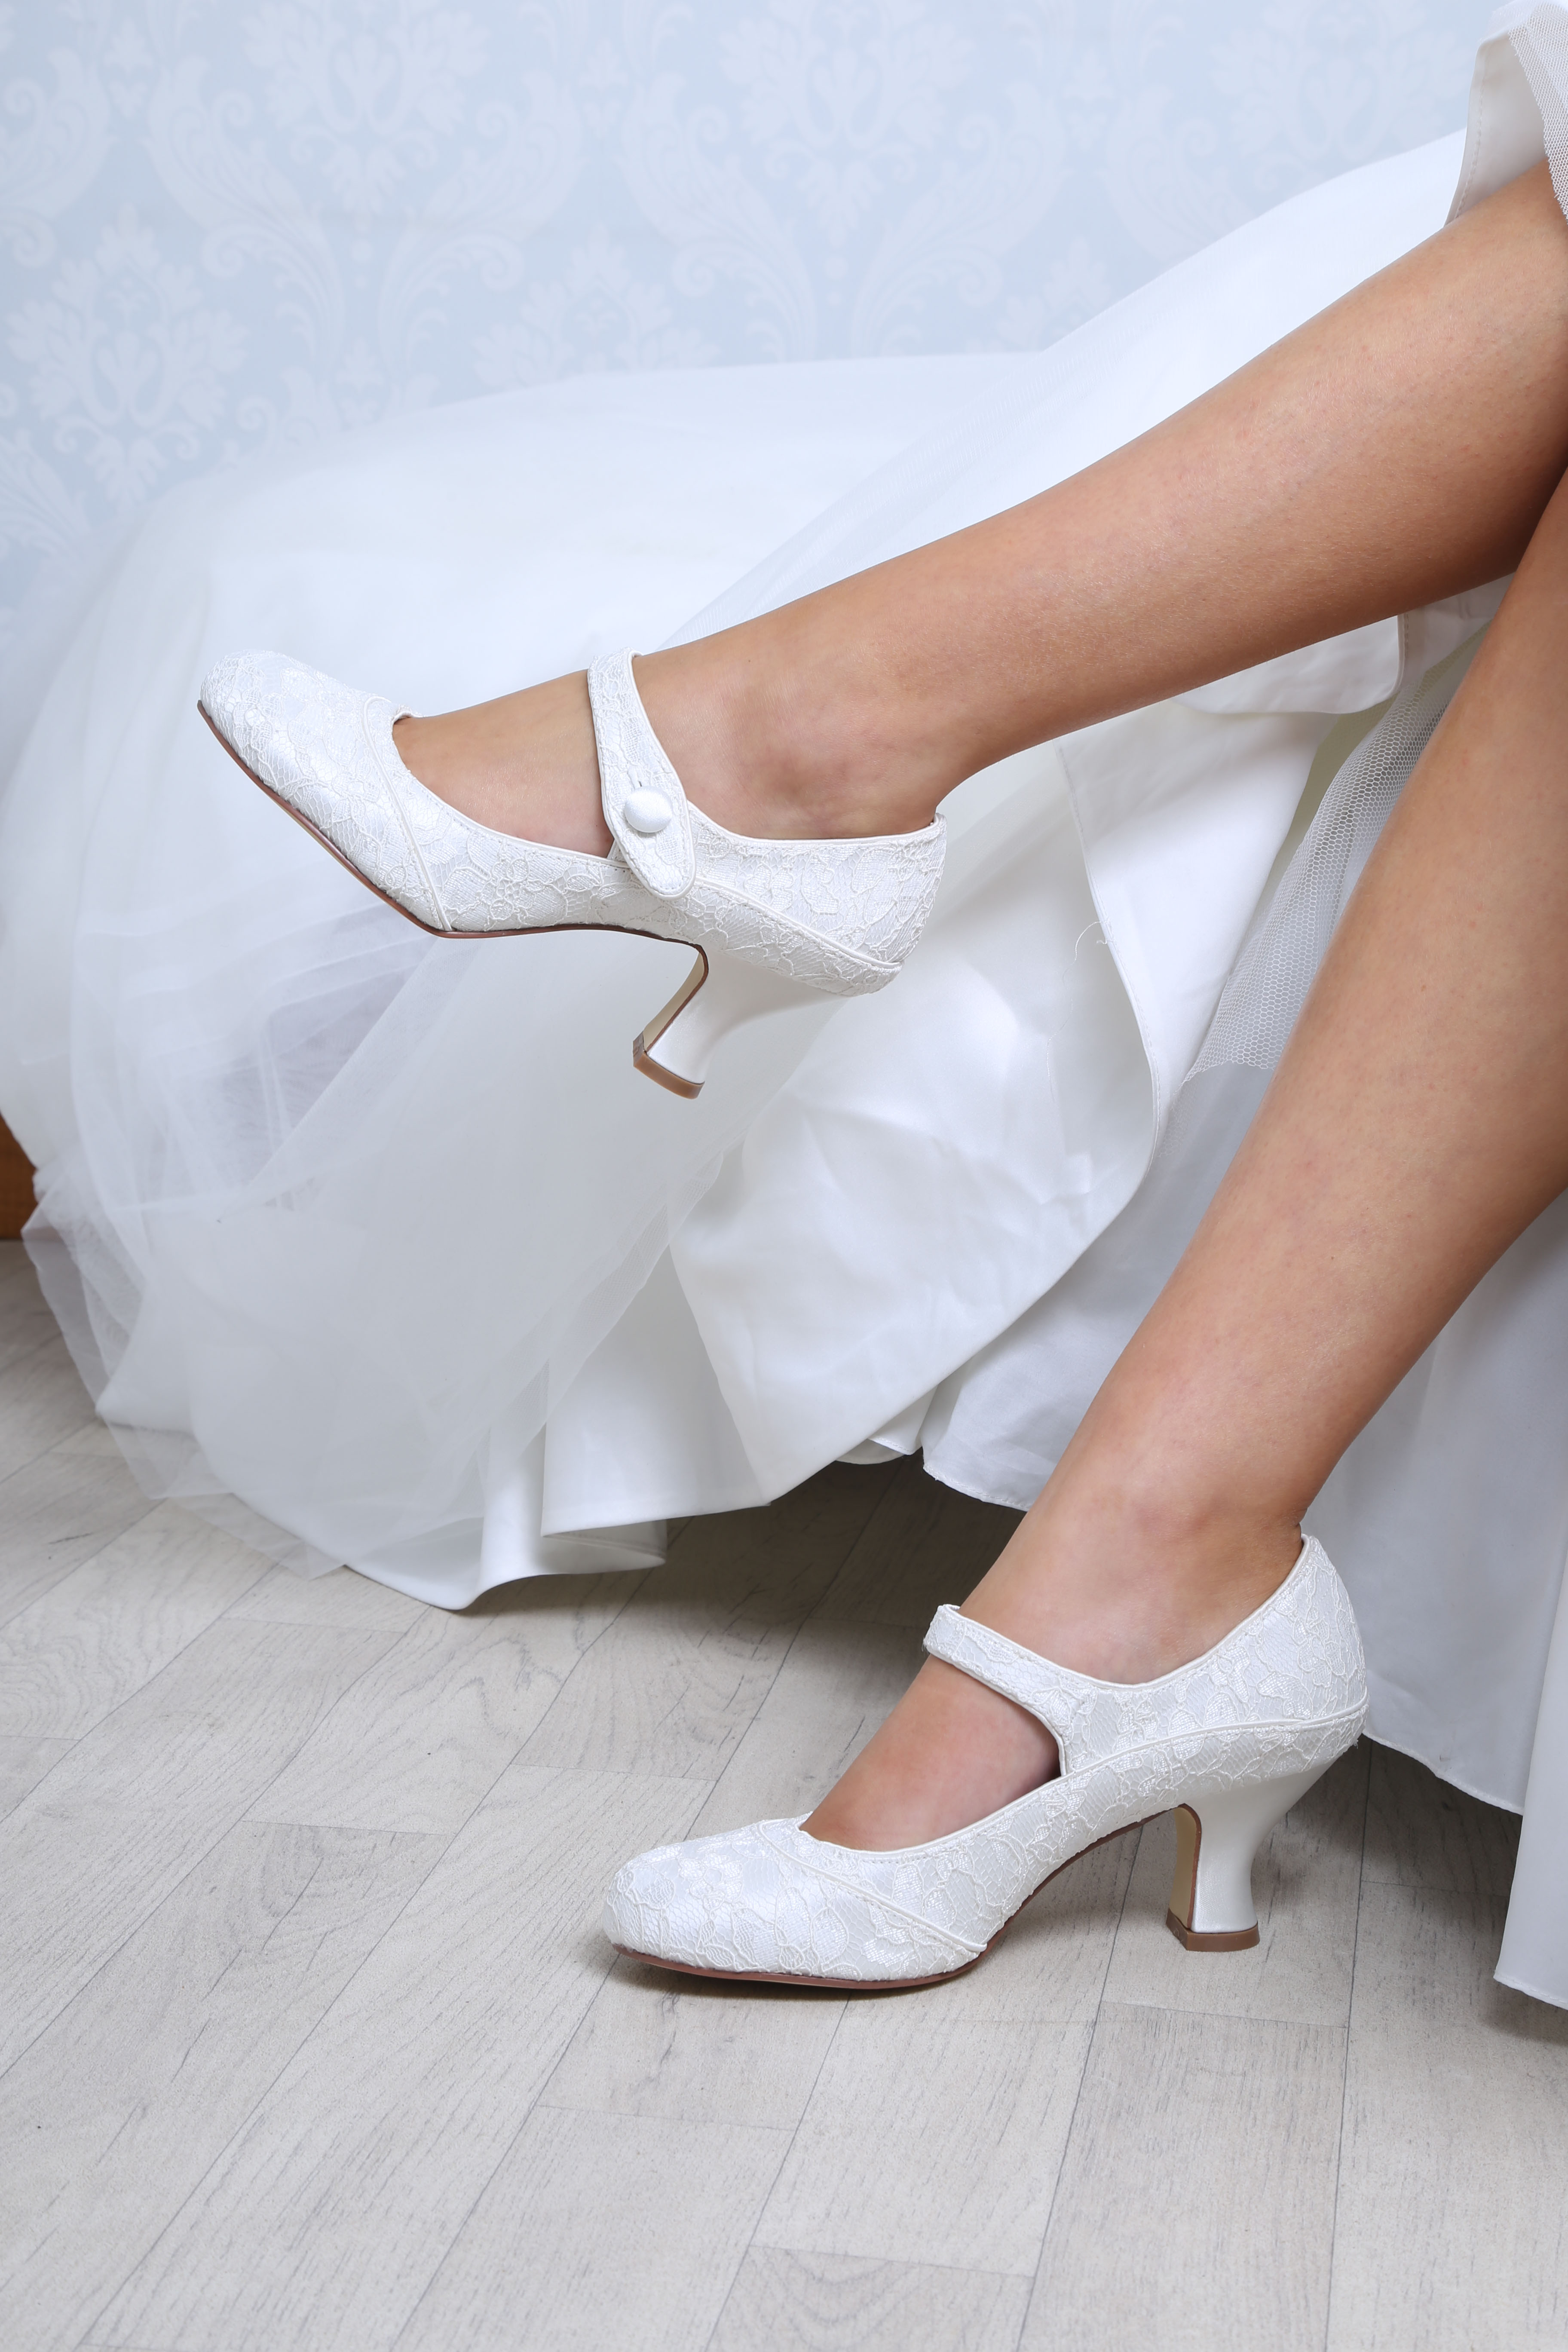 61397366f1a Perfect Bridal Esta Shoes - Ivory Lace - wide fitting - Crystal ...